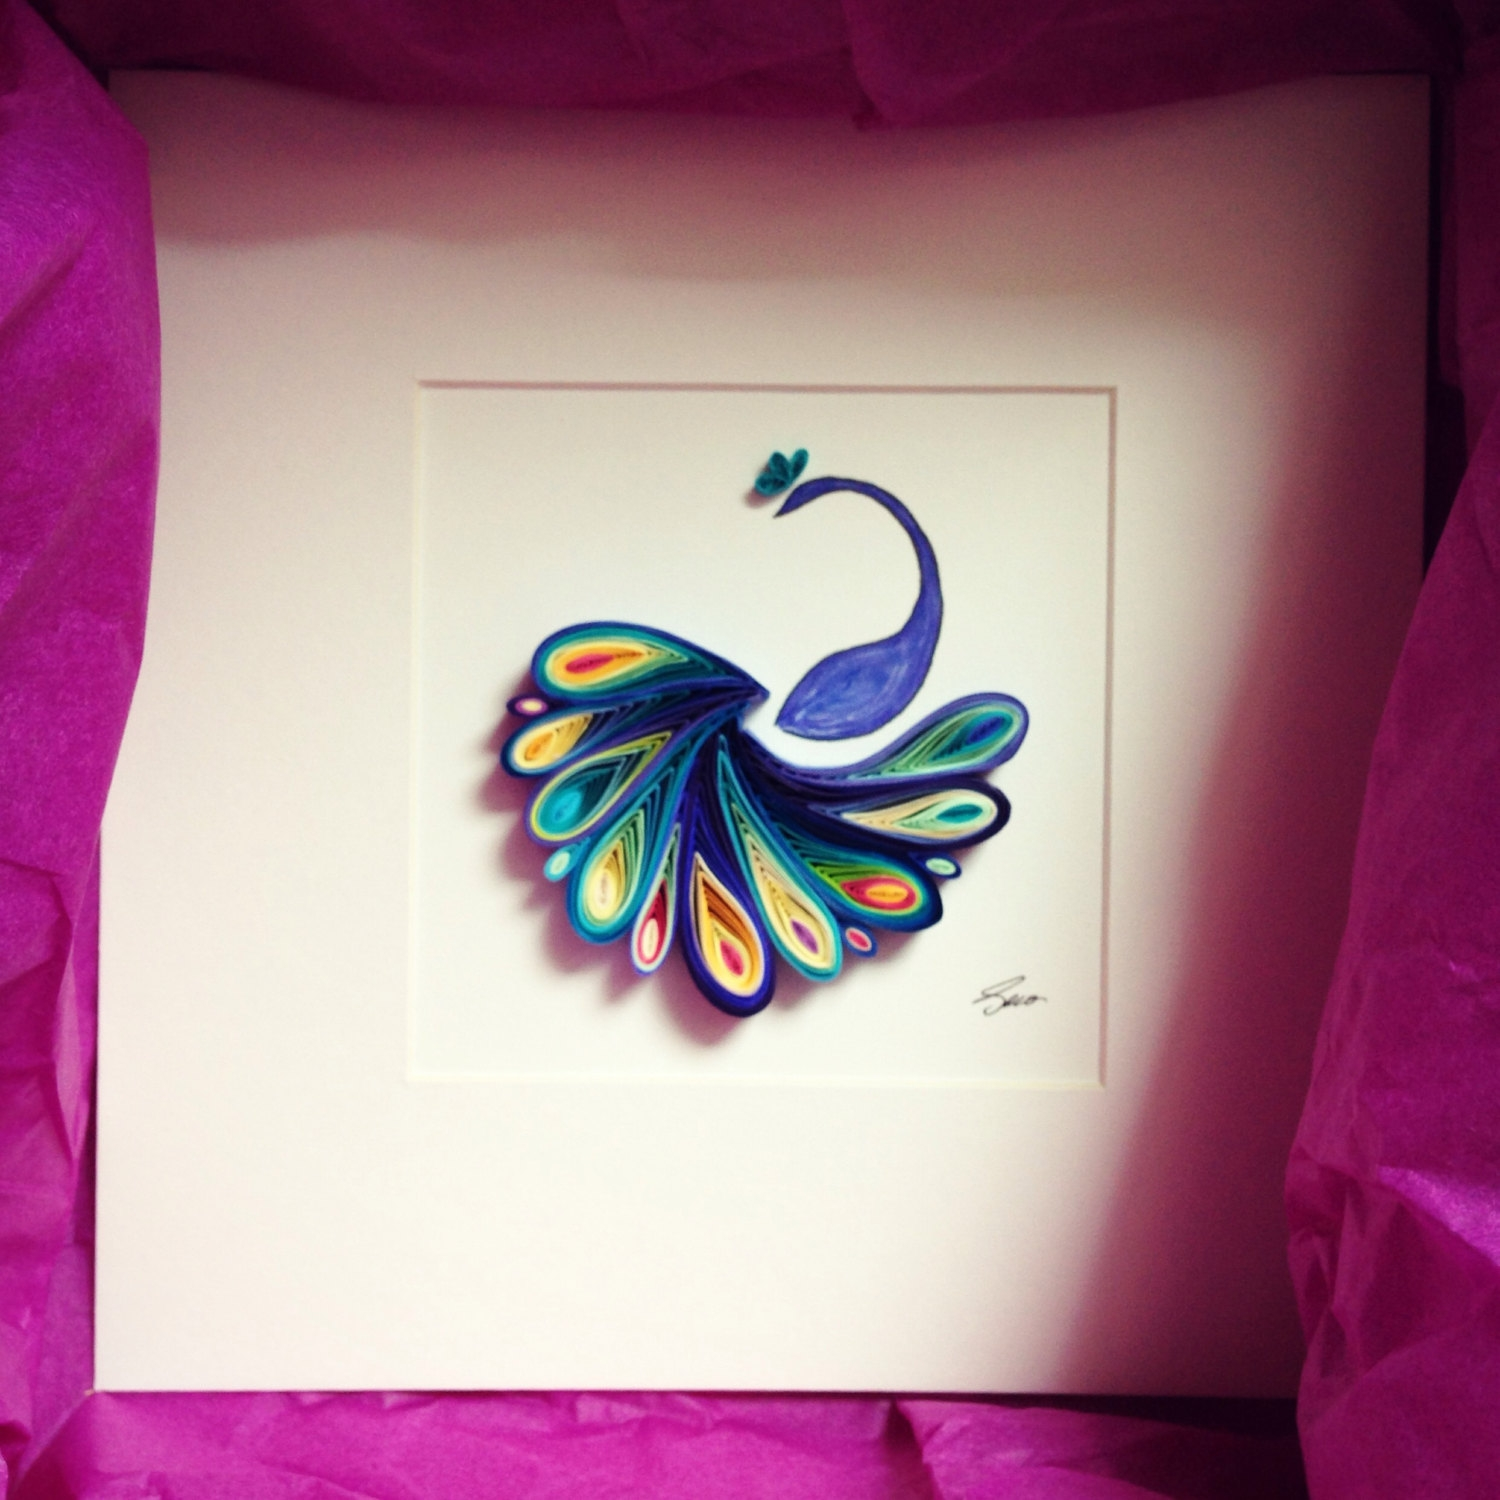 08-Peacock-Sena-Runa-Beautiful-Designs-Accomplished-with-Paper-Quilling-Art-www-designstack-co